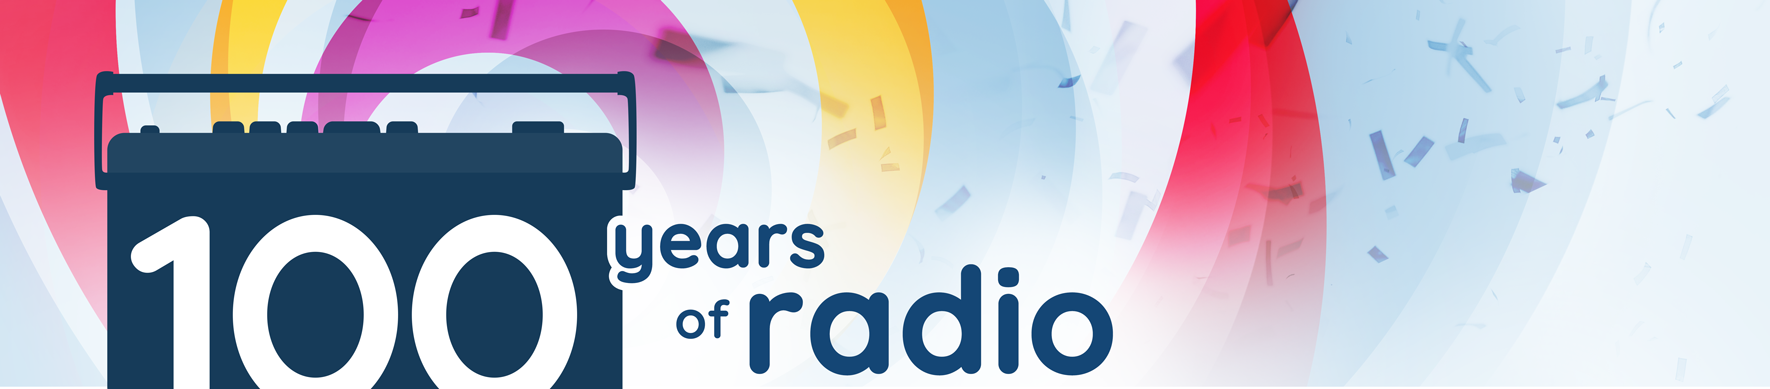 CELEBRATING 100 YEARS OF RADIO IN CANADA!